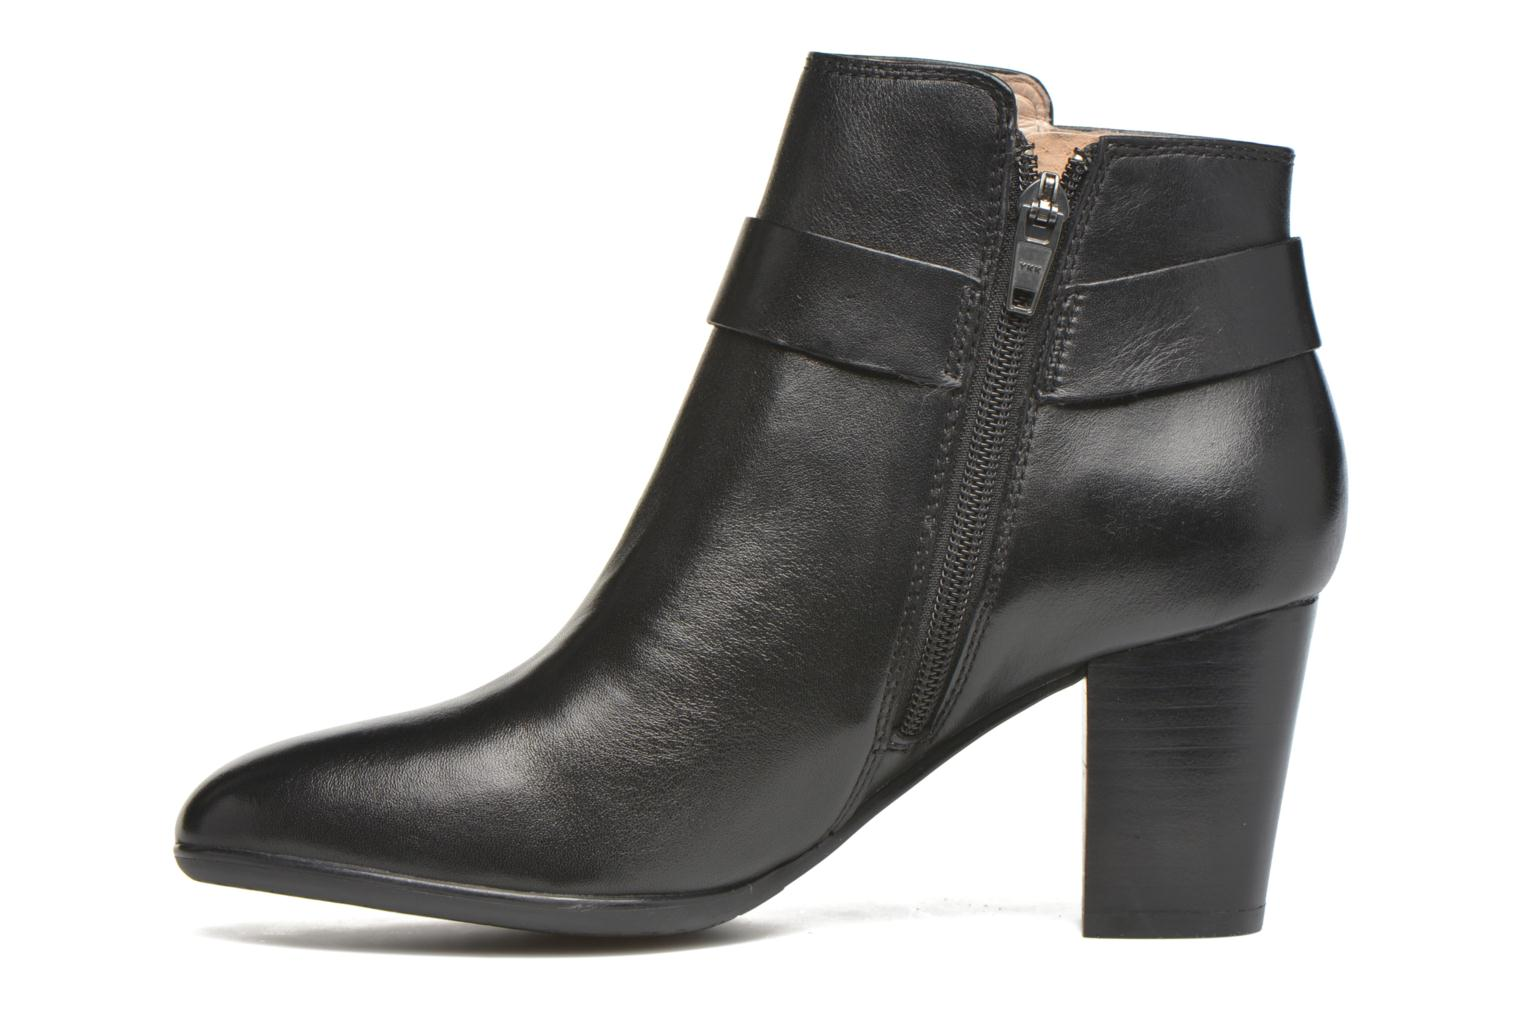 Bottines et boots JB MARTIN Catane Noir vue face